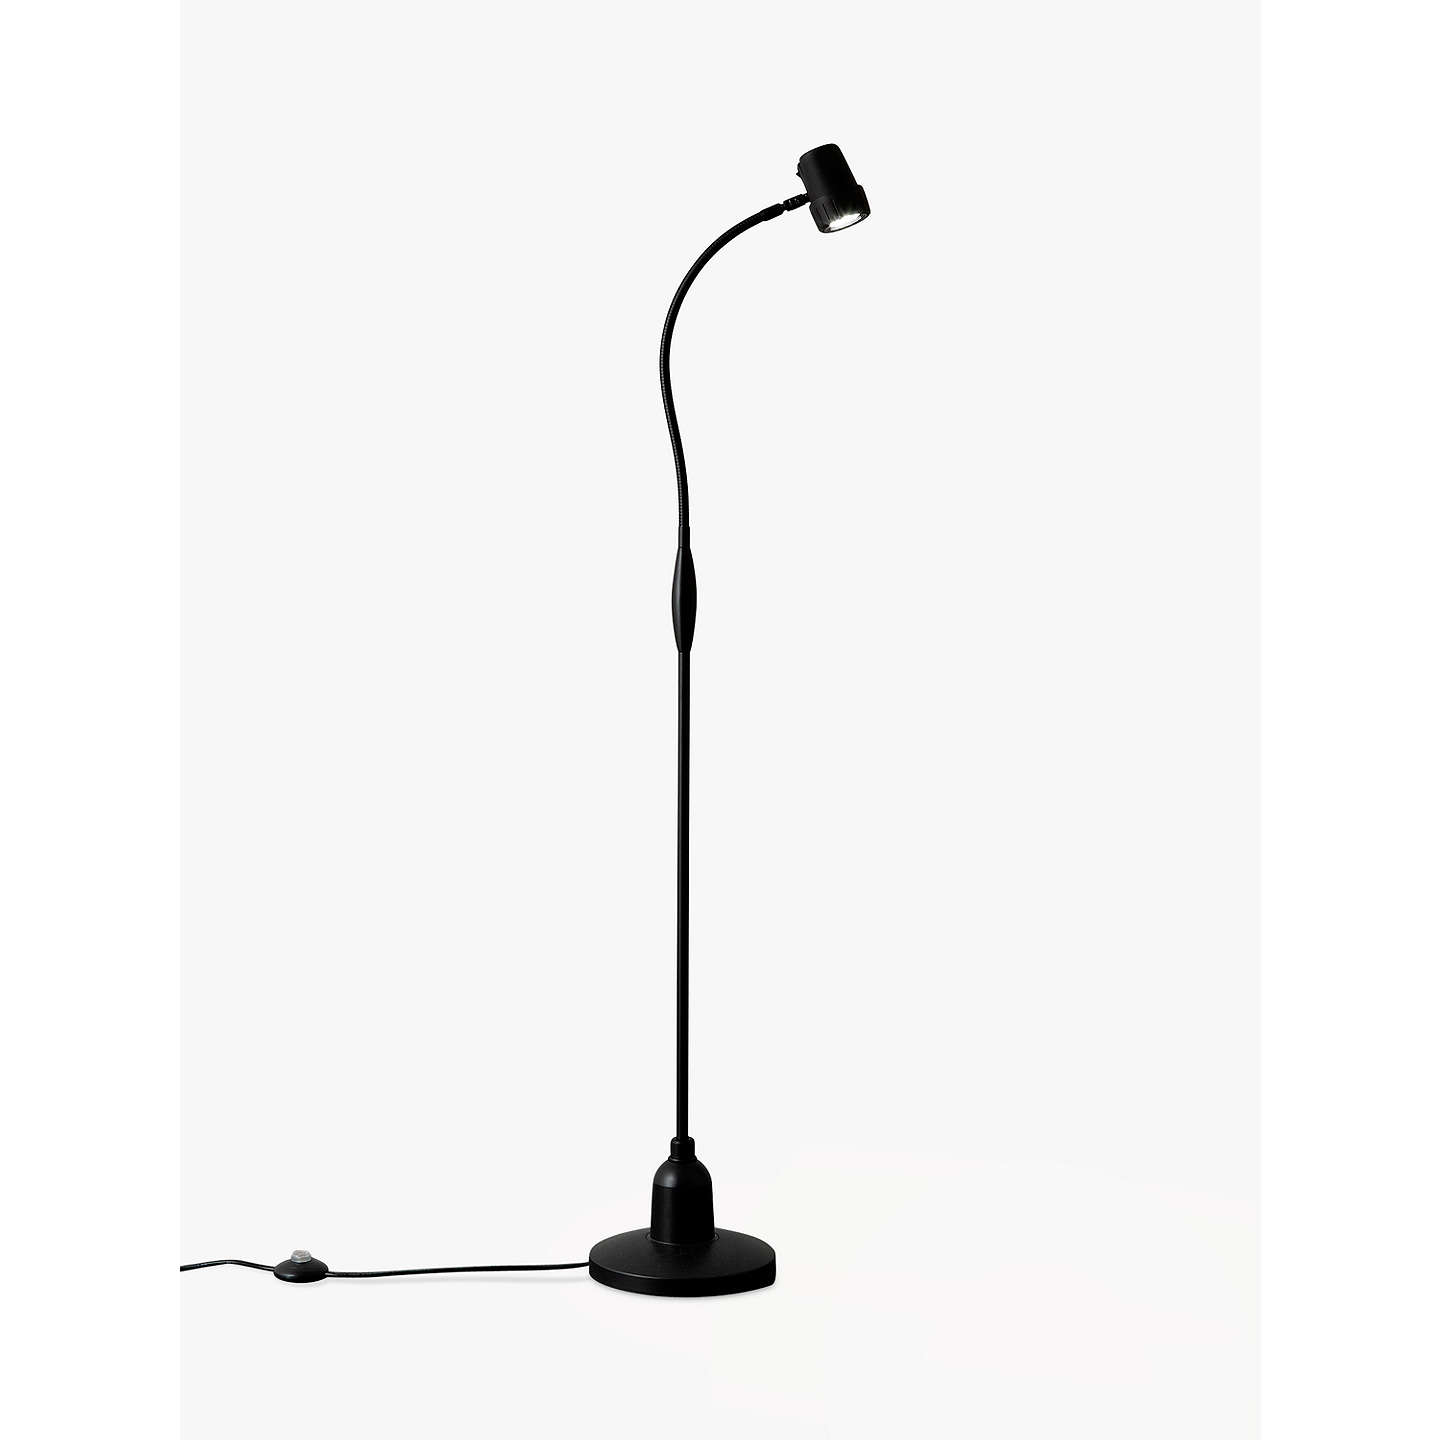 Serious readers alex dimmable led floor lamp at john lewis buyserious readers alex dimmable led floor lamp online at johnlewis mozeypictures Gallery